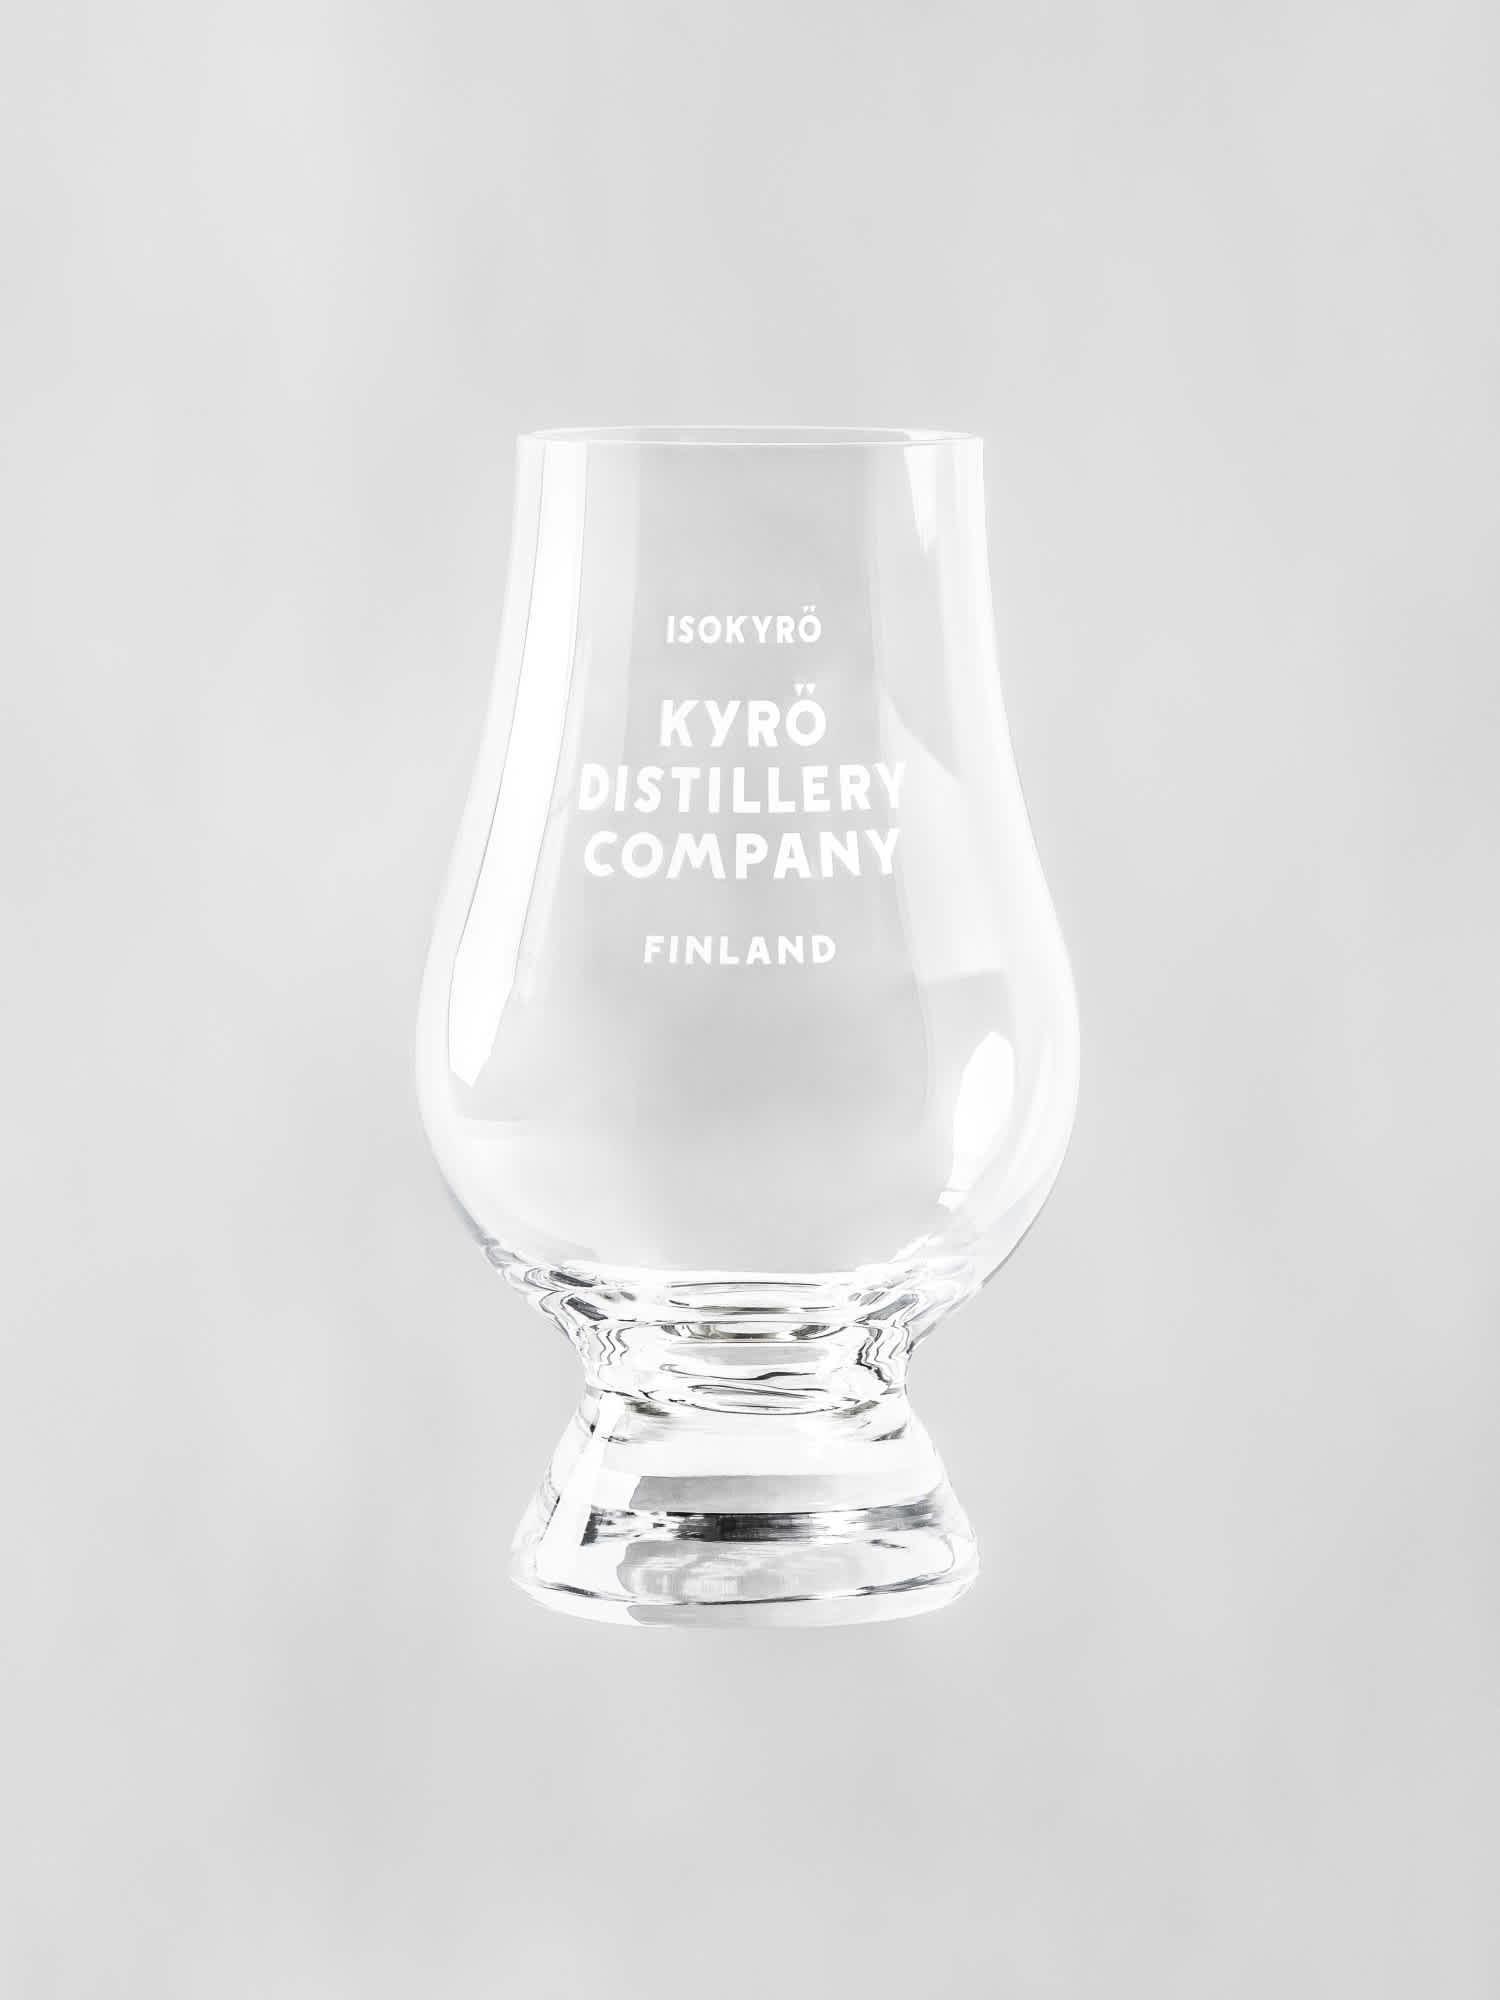 Product photo: a Kyrö-branded Glencairn tasting glass.